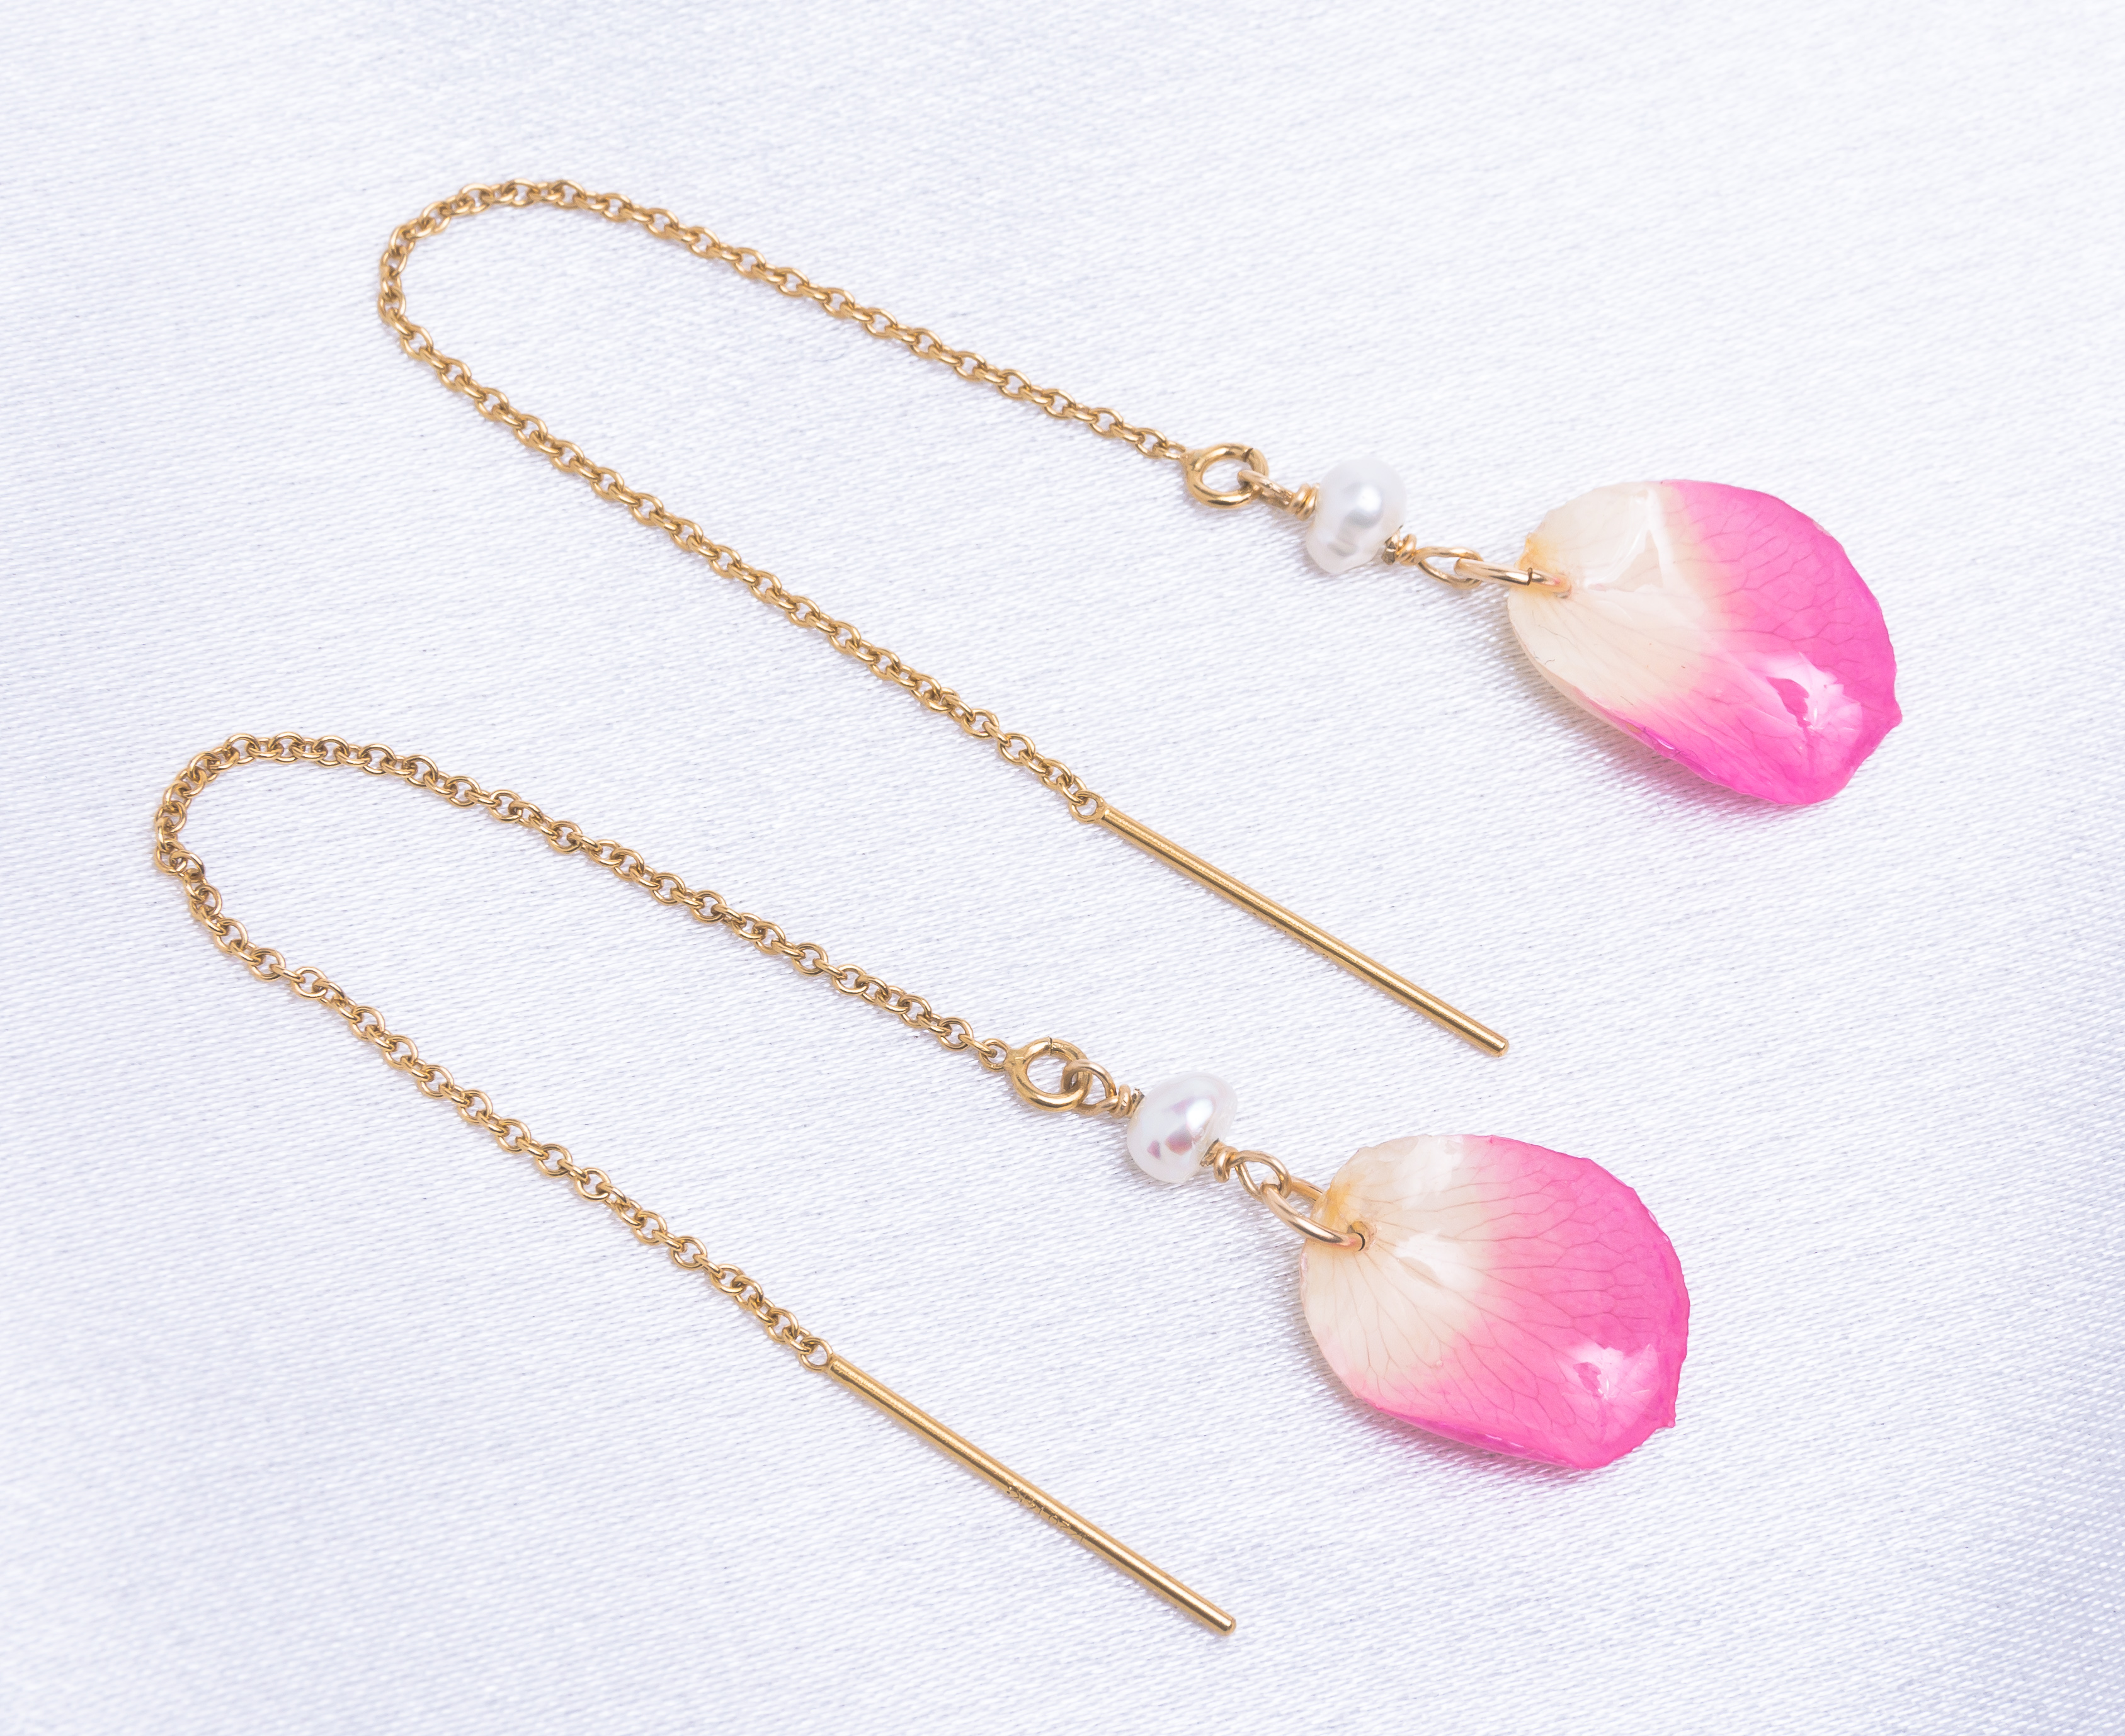 rose petal chain earrings